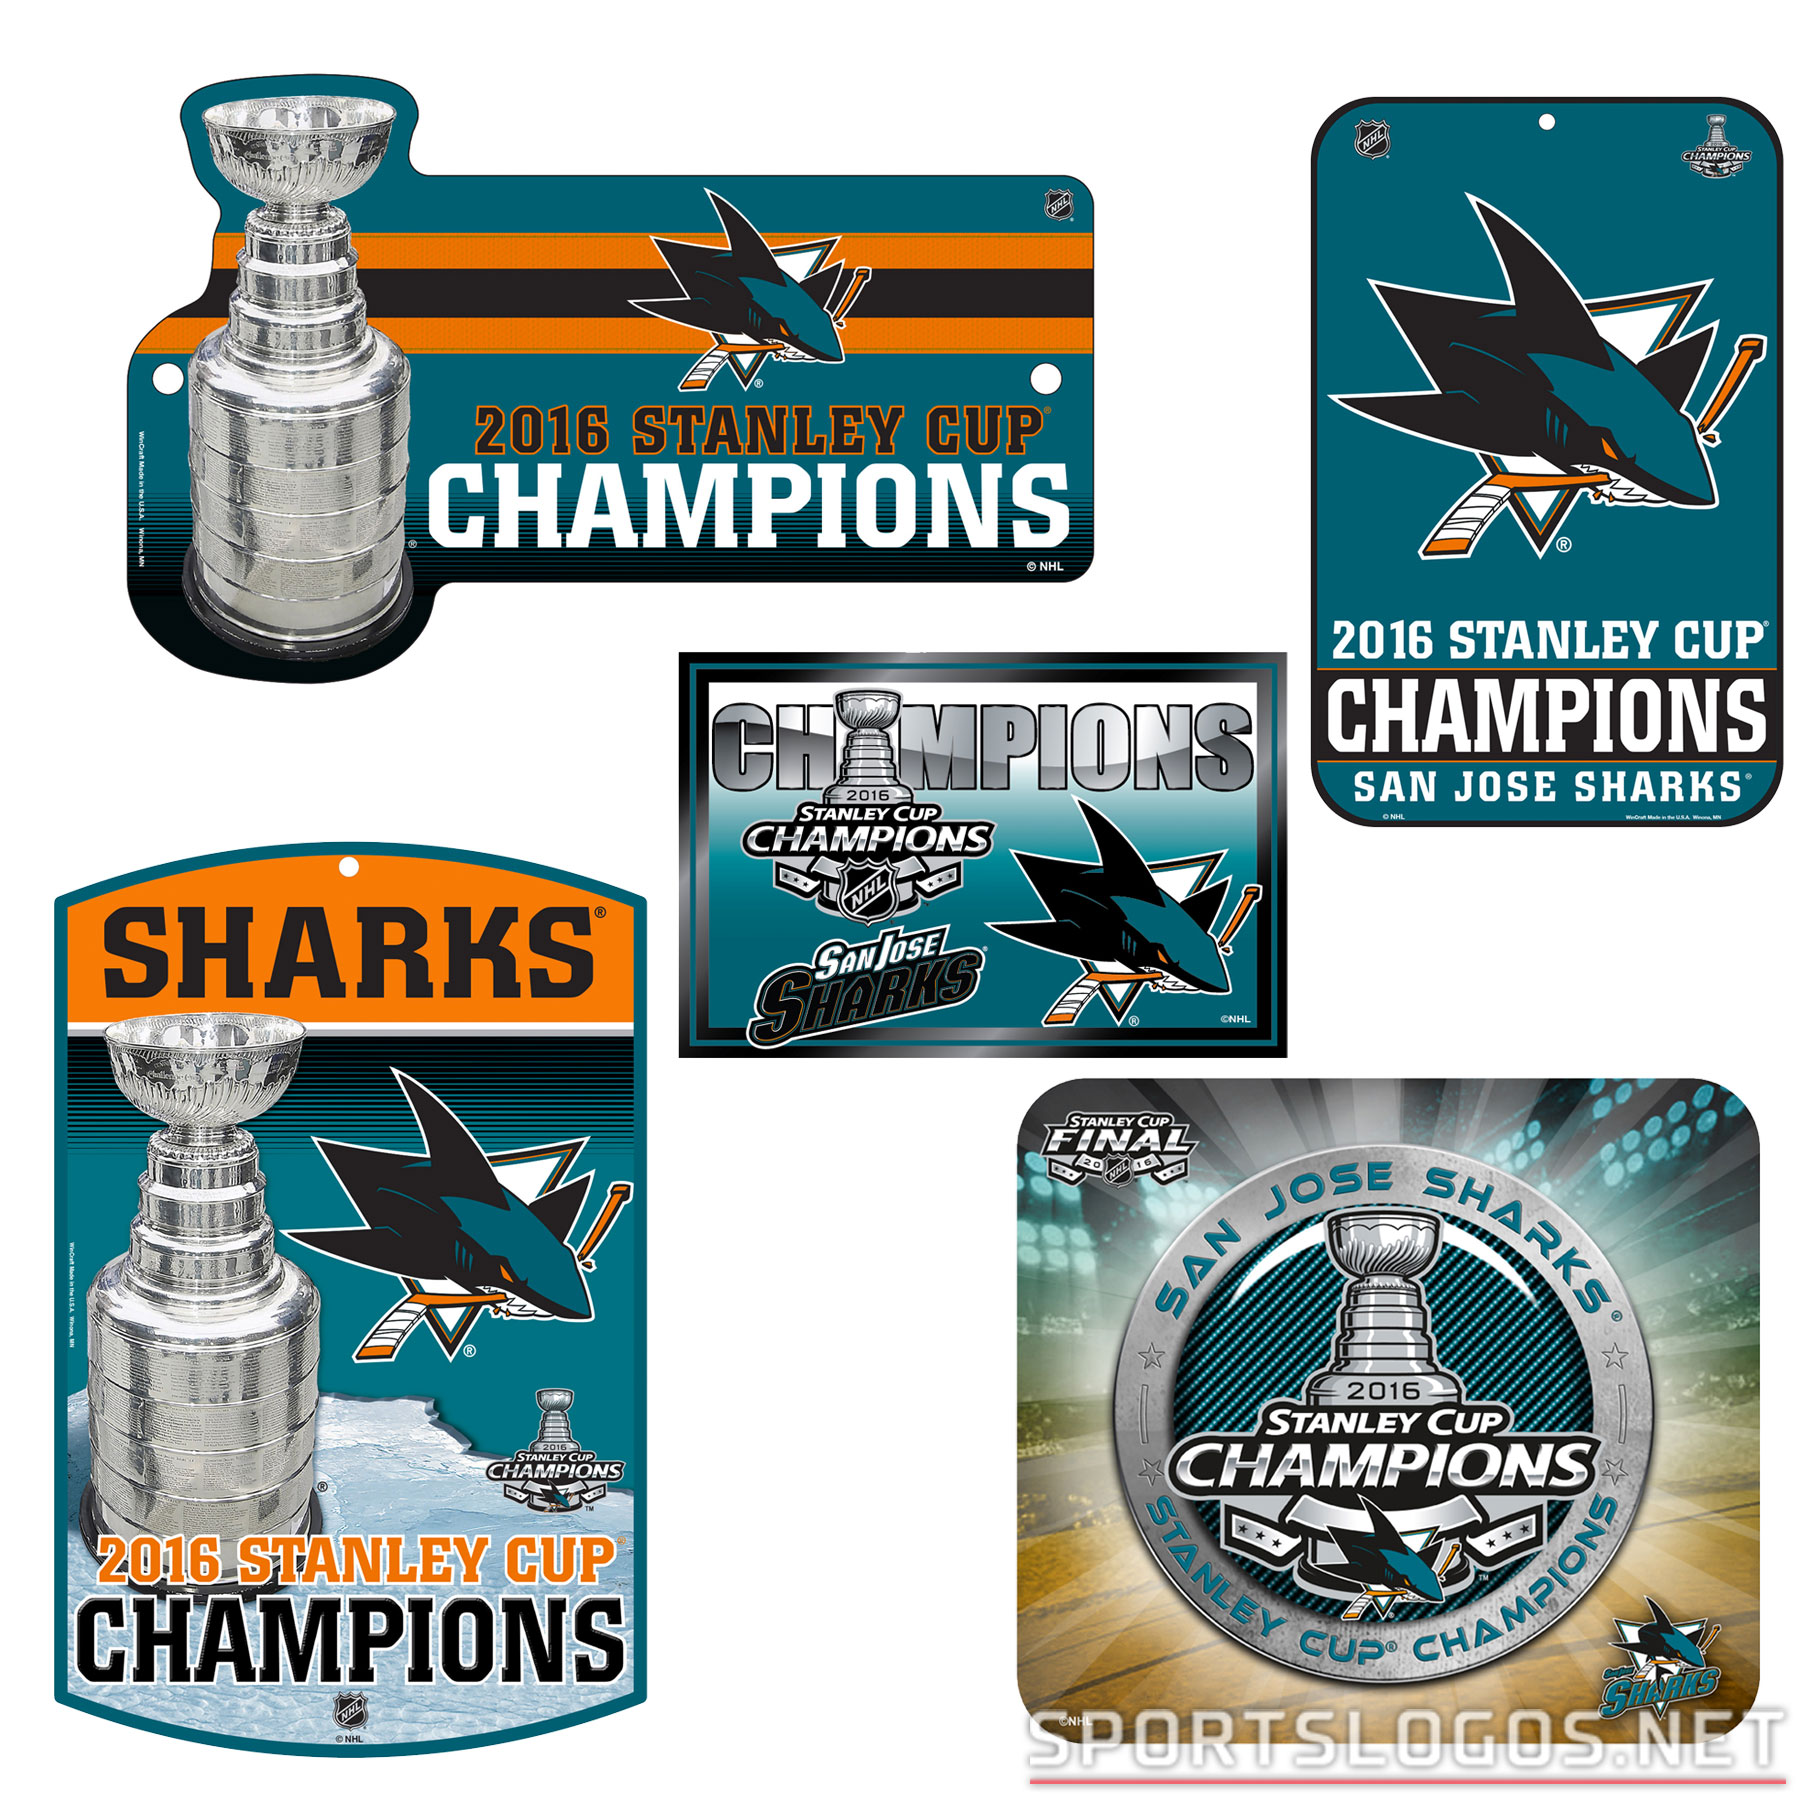 What If? San Jose Sharks 2016 Stanley Cup Champs Merchandise